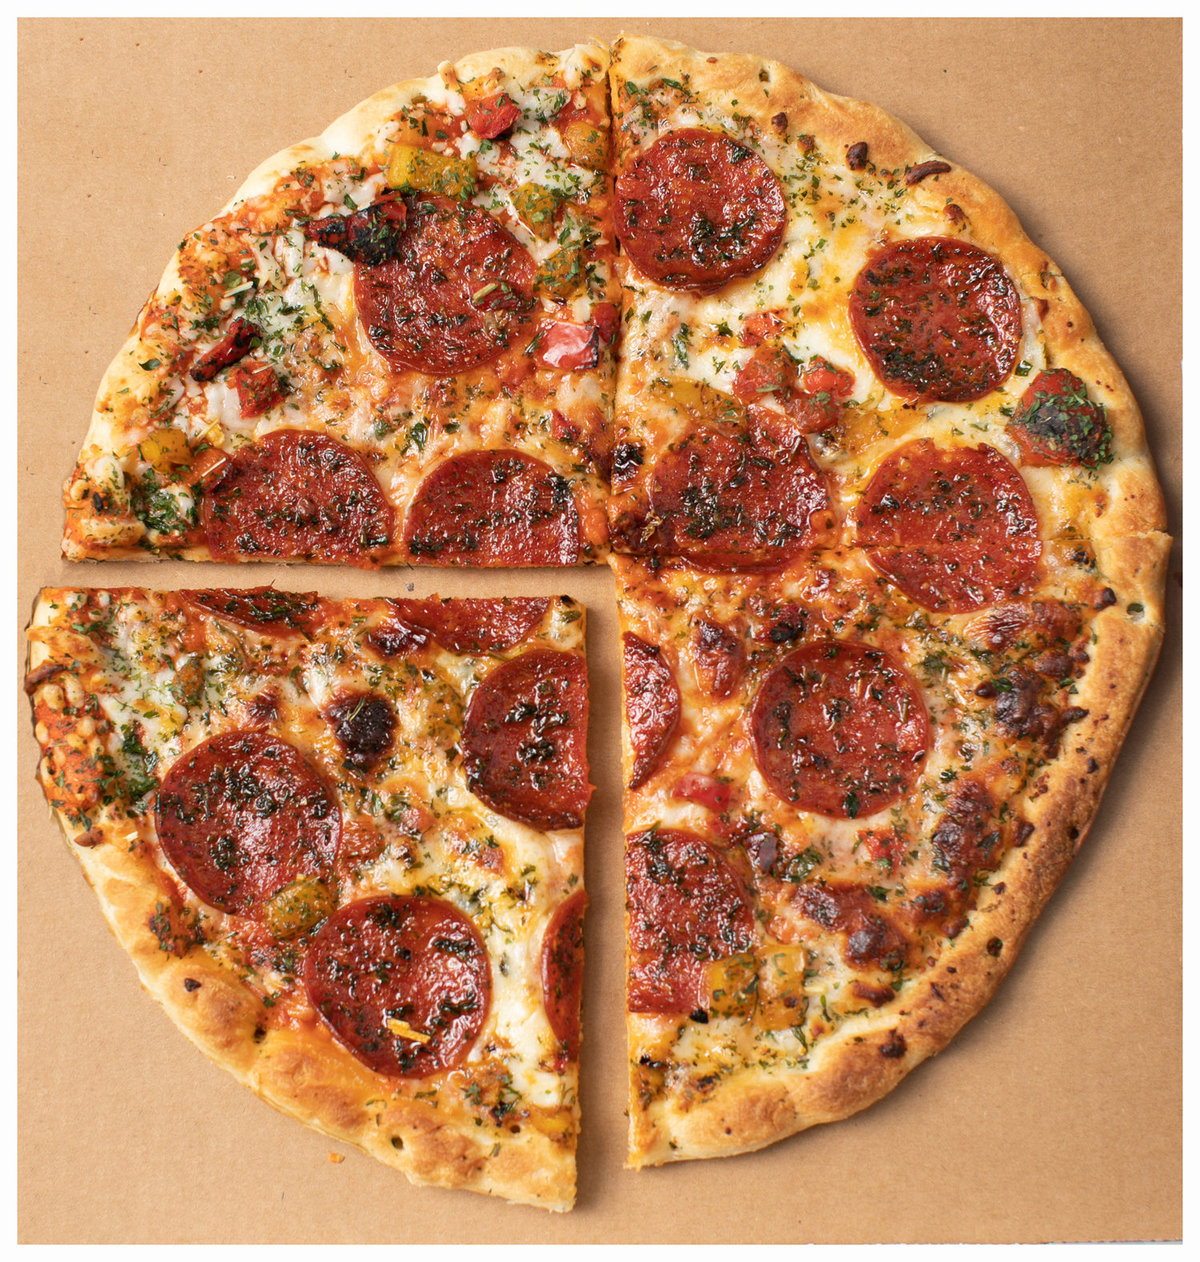 Overhead-Cropped-Pizza_White-Border_5MB-1